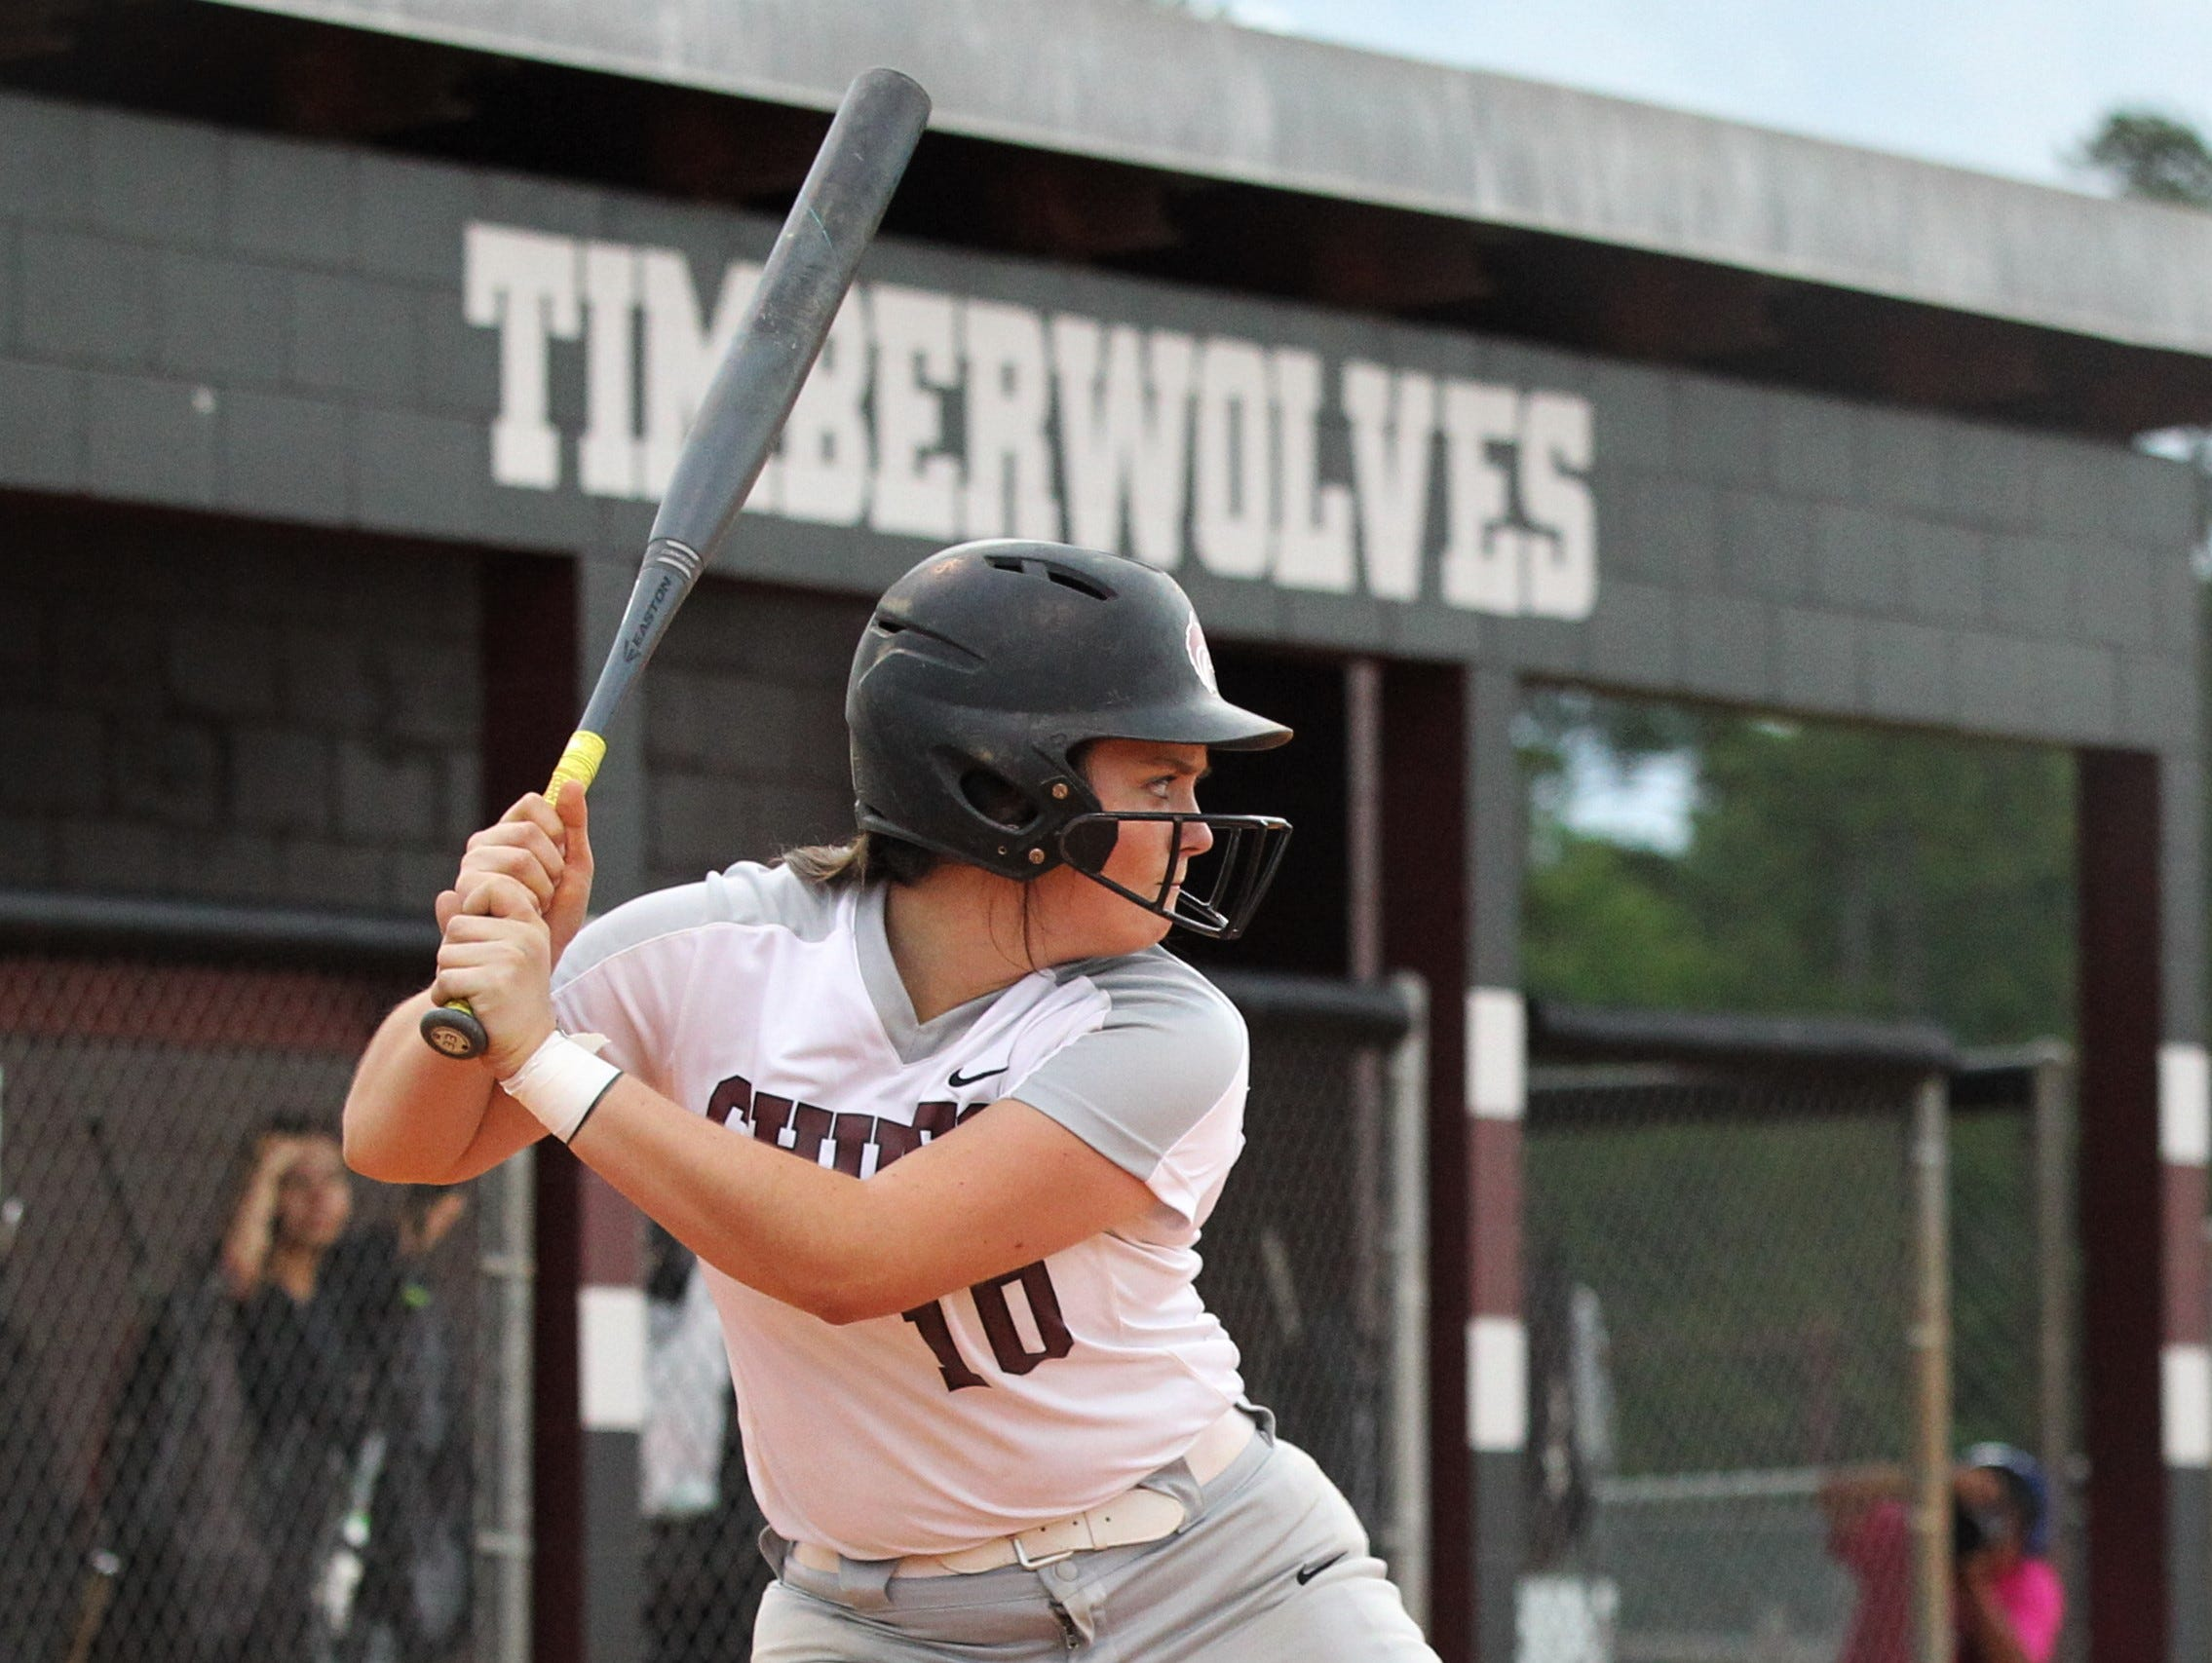 Chiles senior Haley Bond bats as the Timberwolves beat Atlantic Coast 6-4 during a Region 1-8A quarterfinal softball game on Wednesday, May 8, 2019.